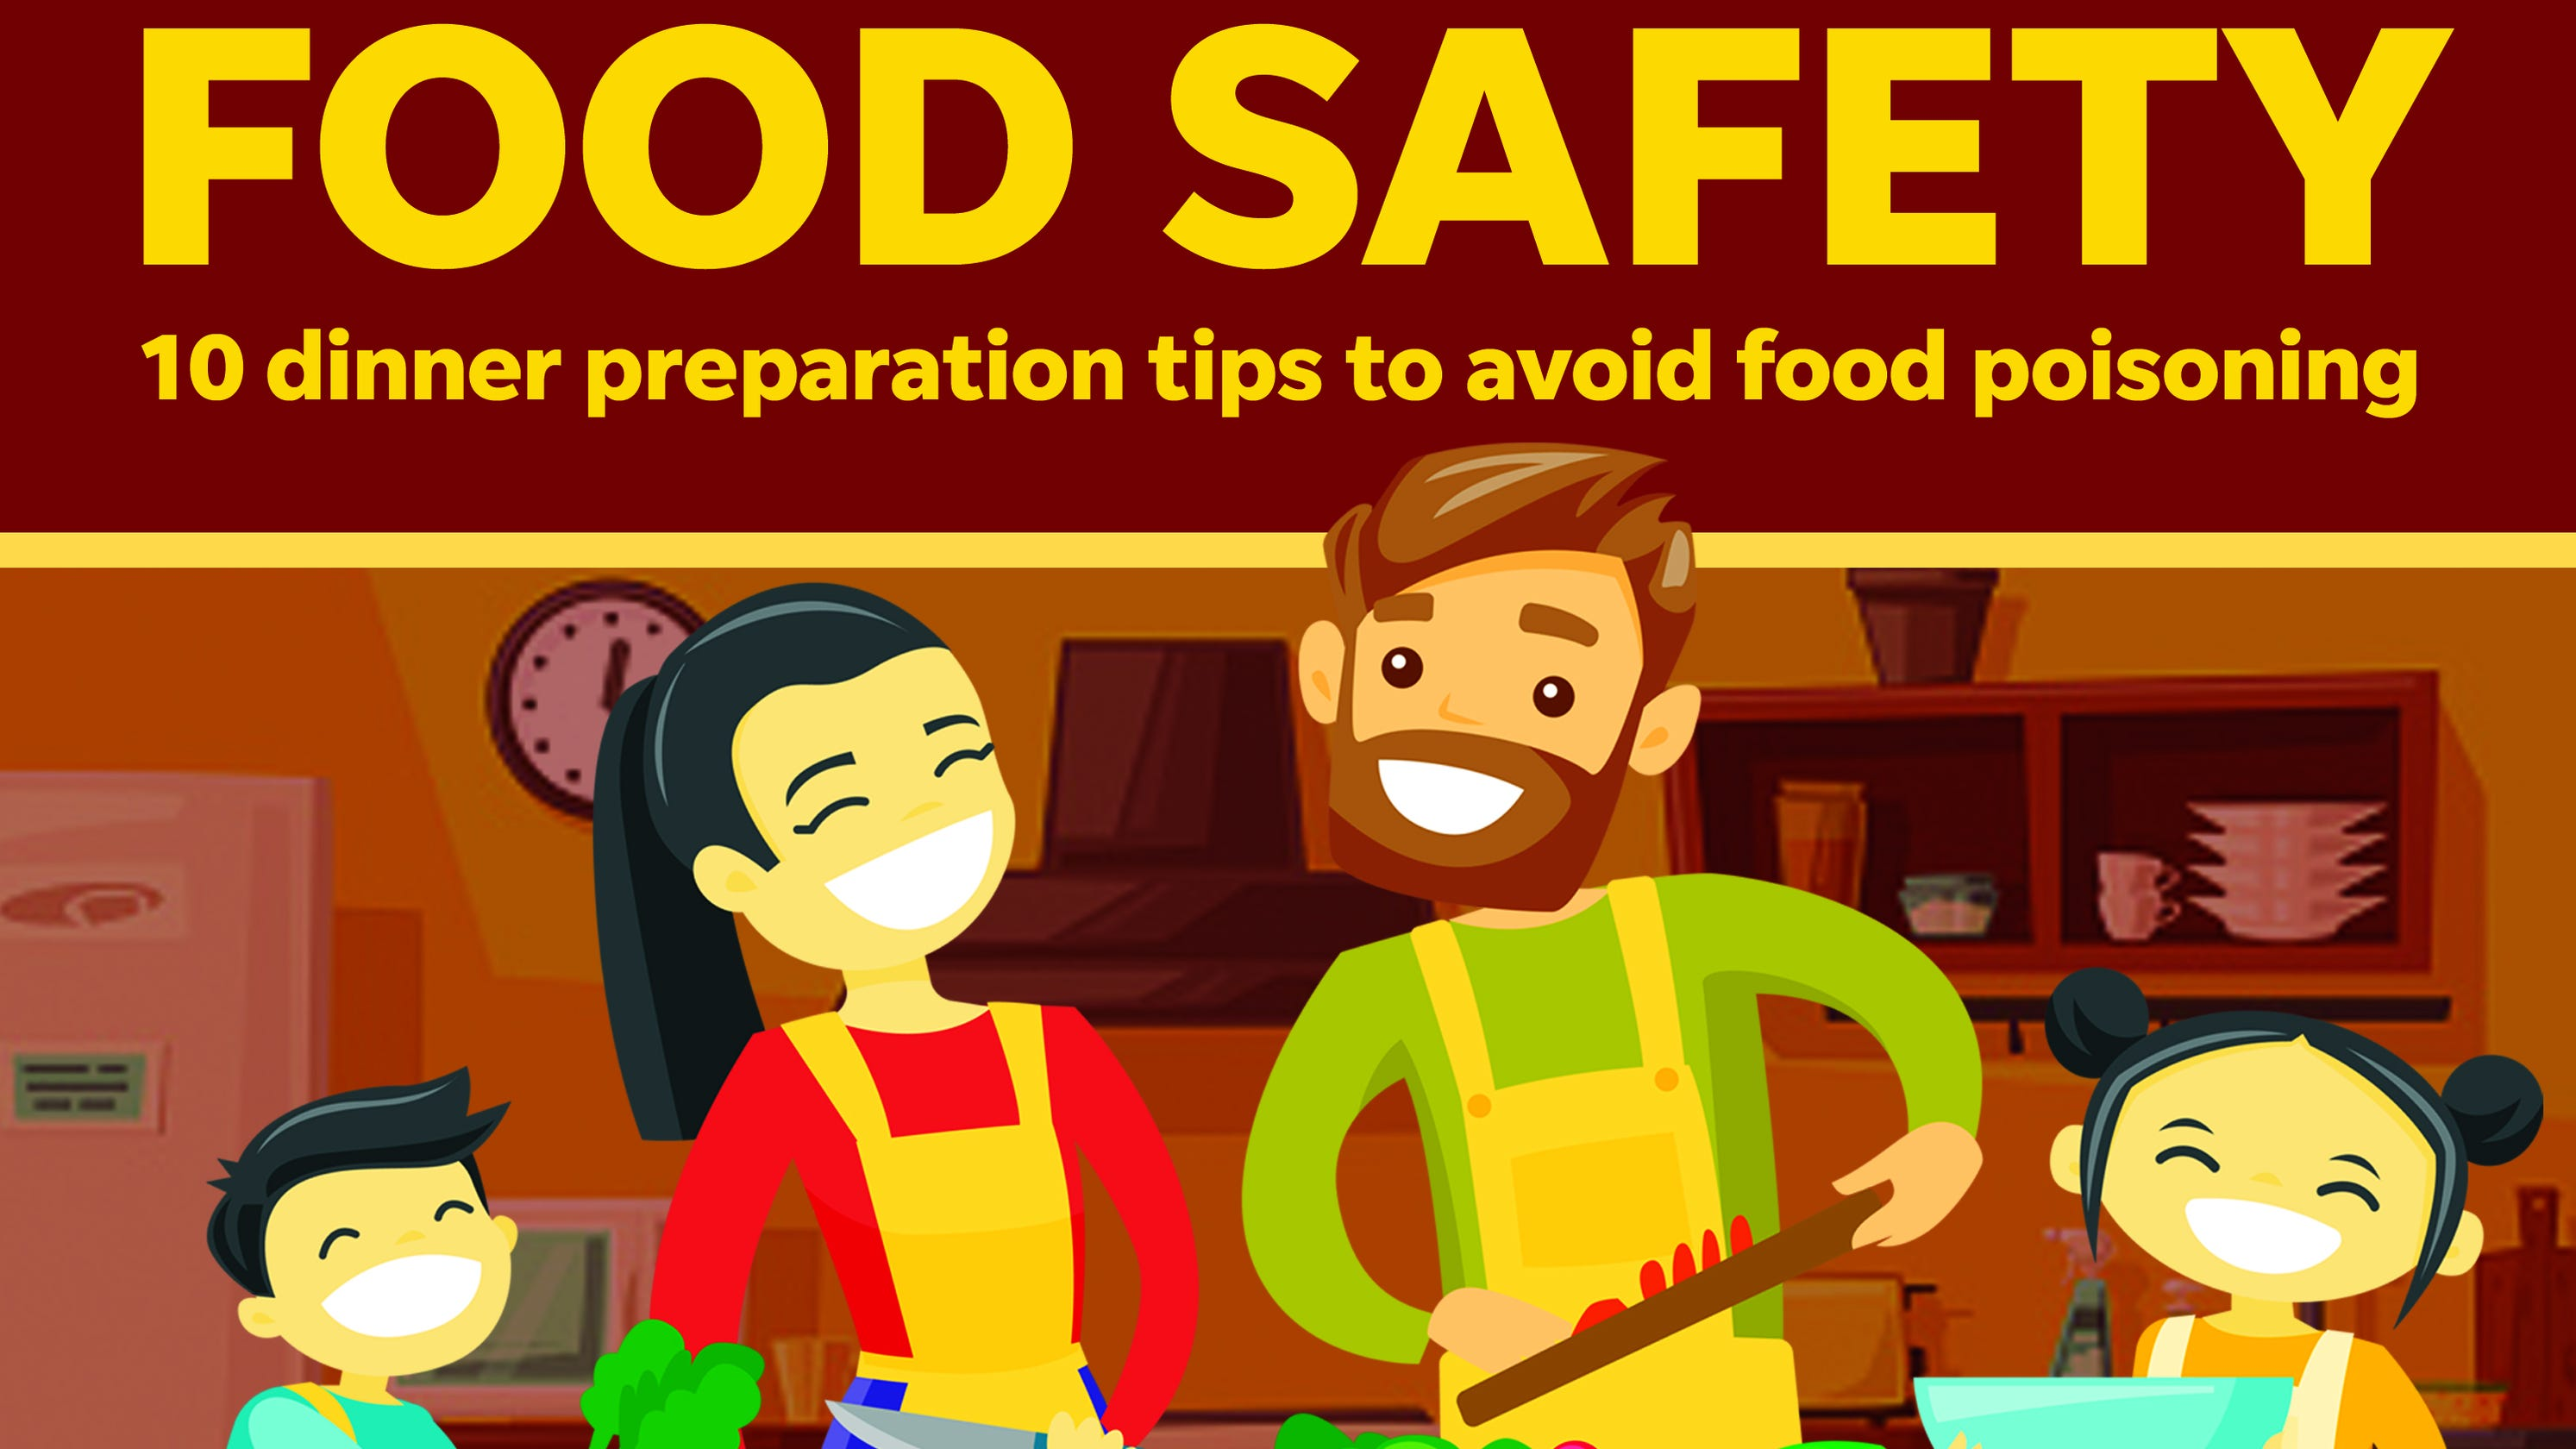 Food poisoning prevention advice from FVTC culinary arts